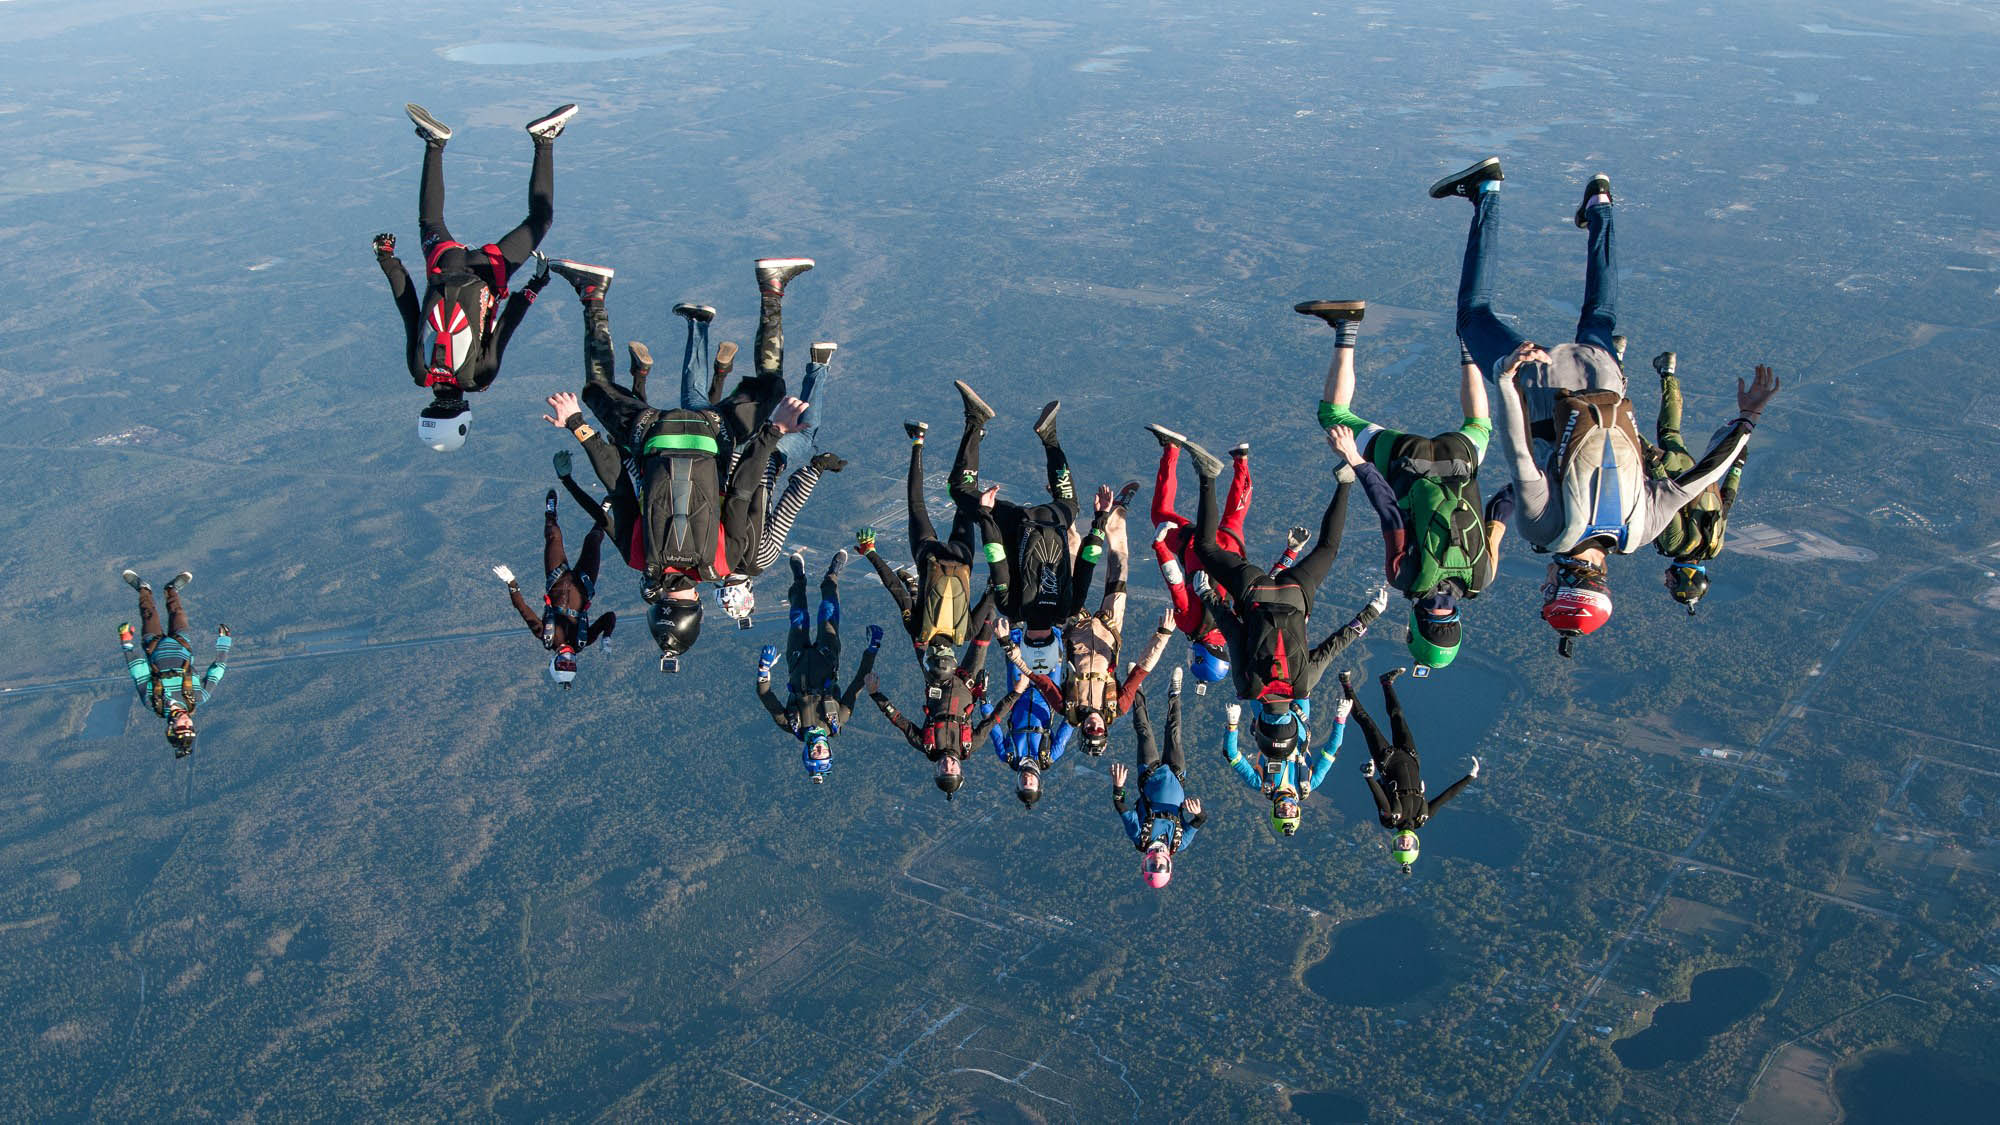 A large group of skydivers flying in a head down position.